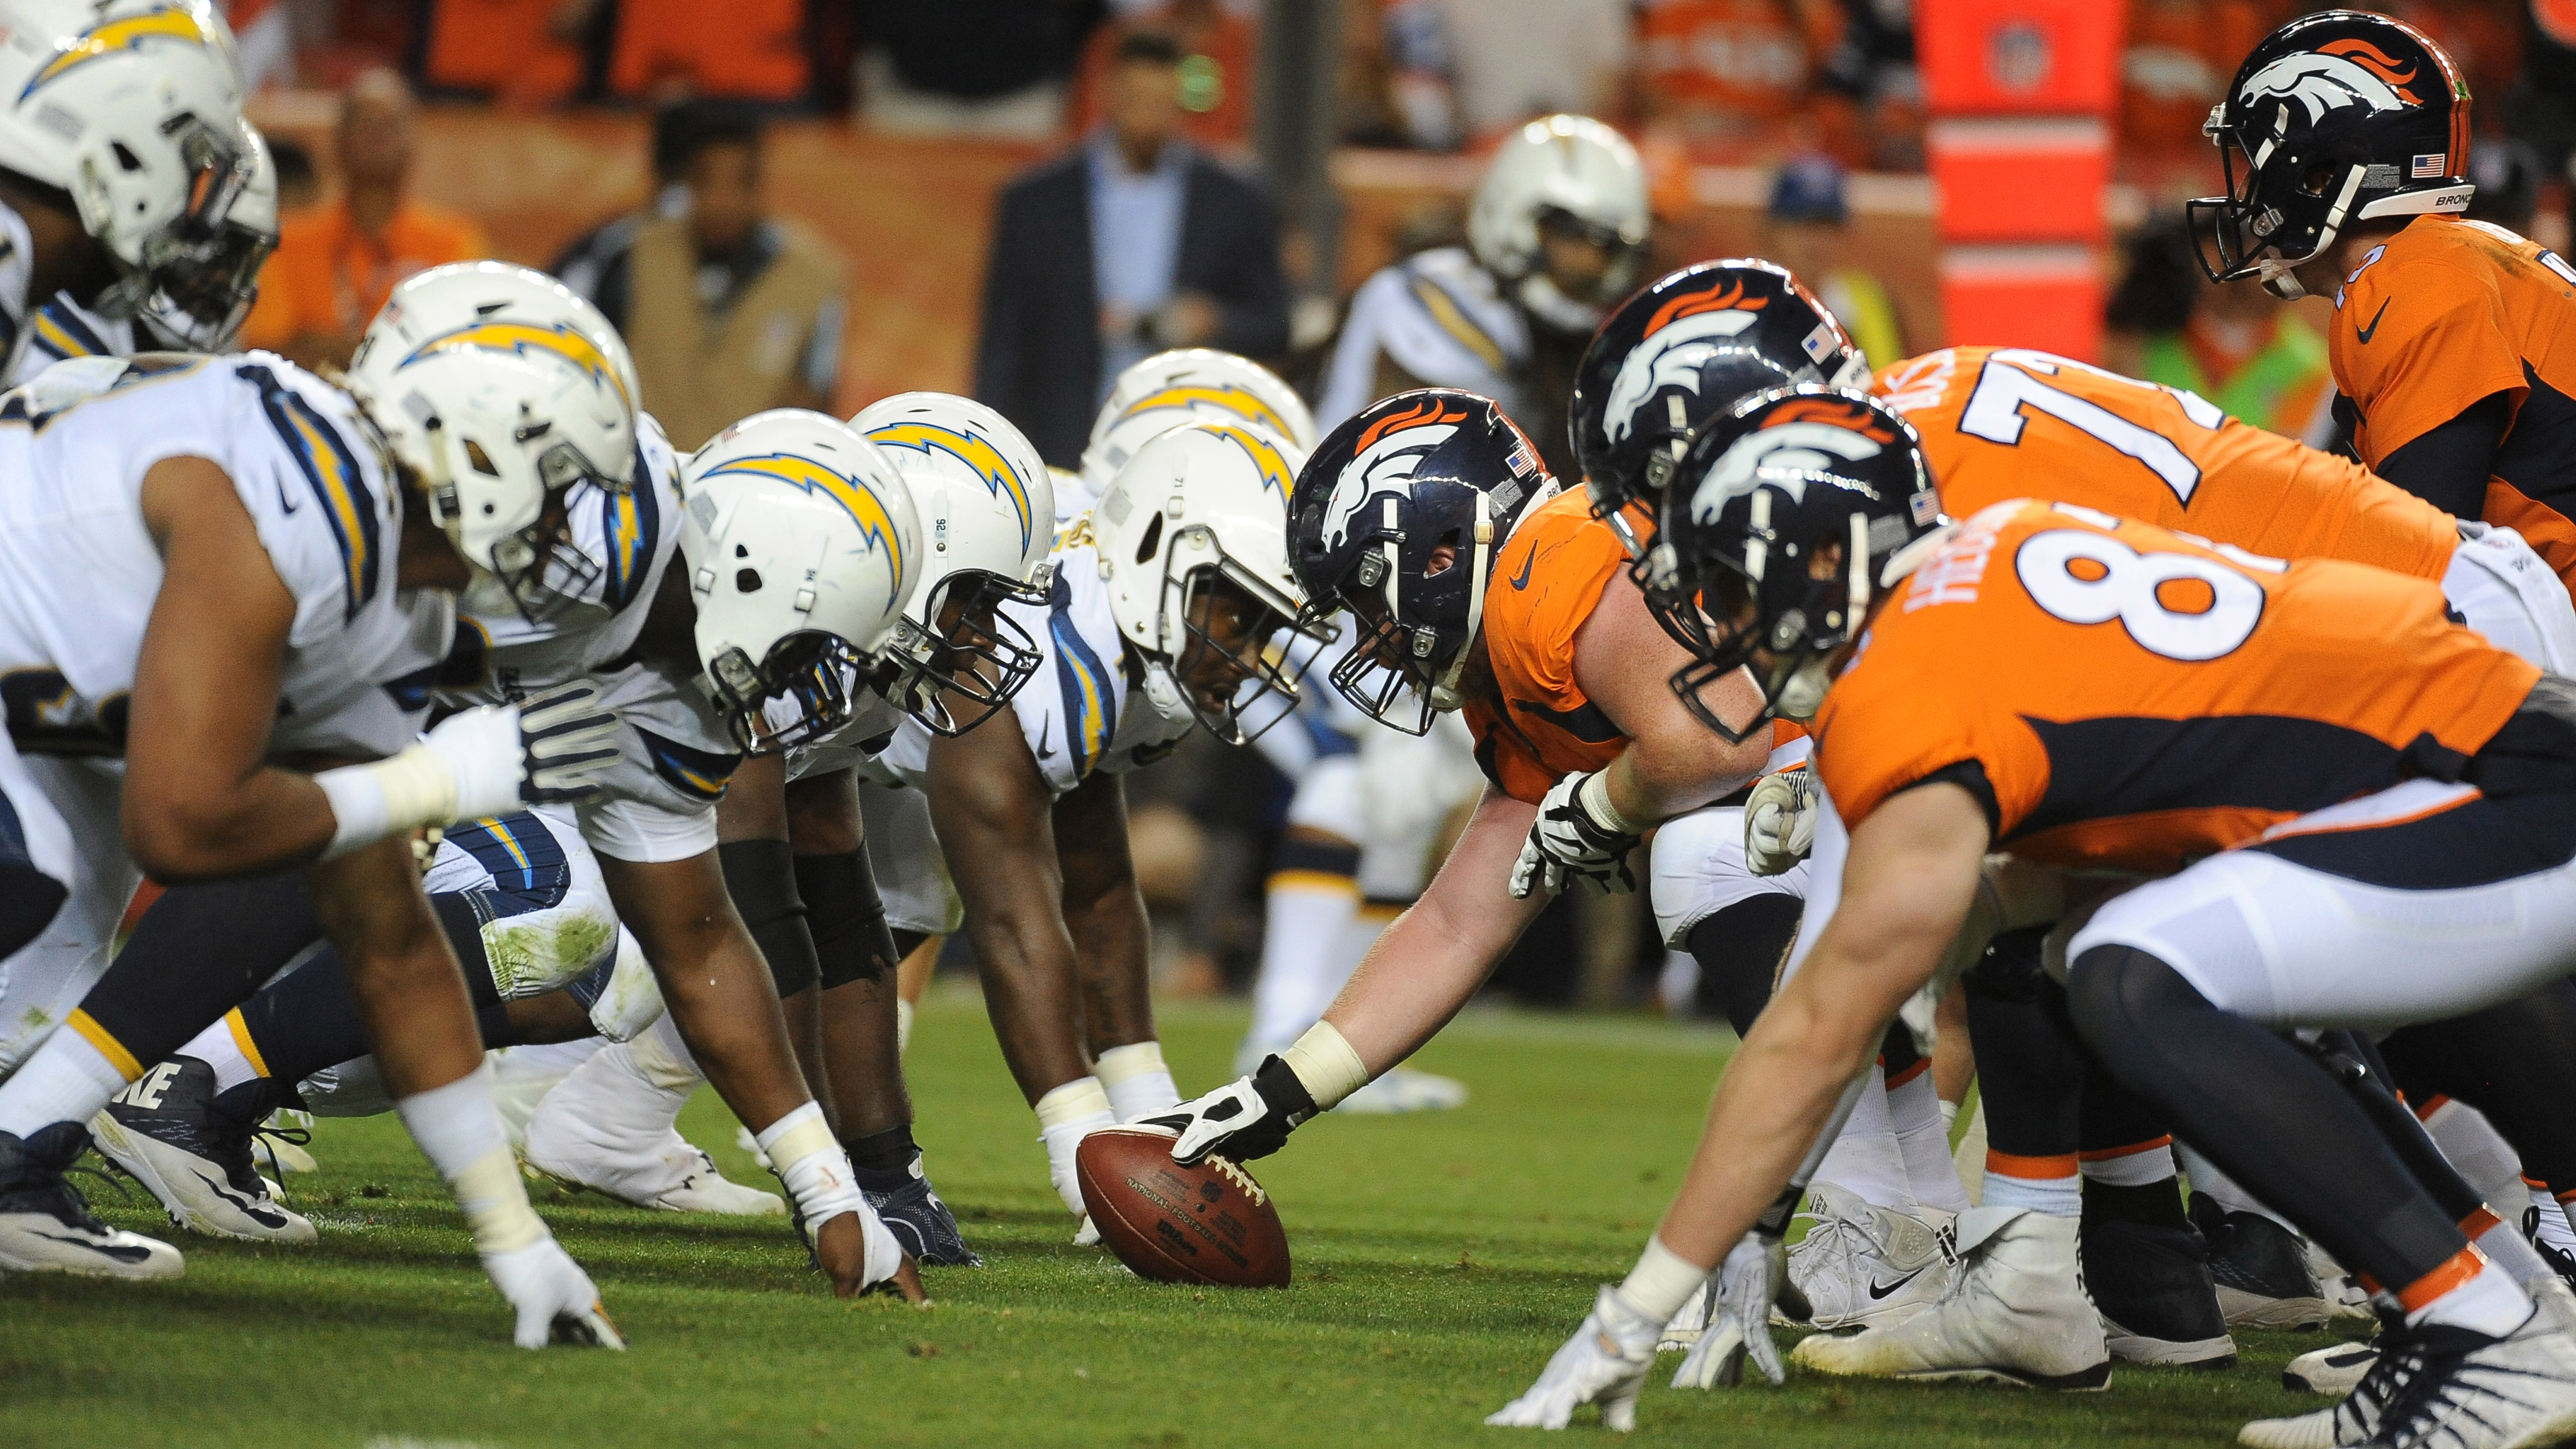 Who Won The Chargers-Broncos Monday Night Football Game